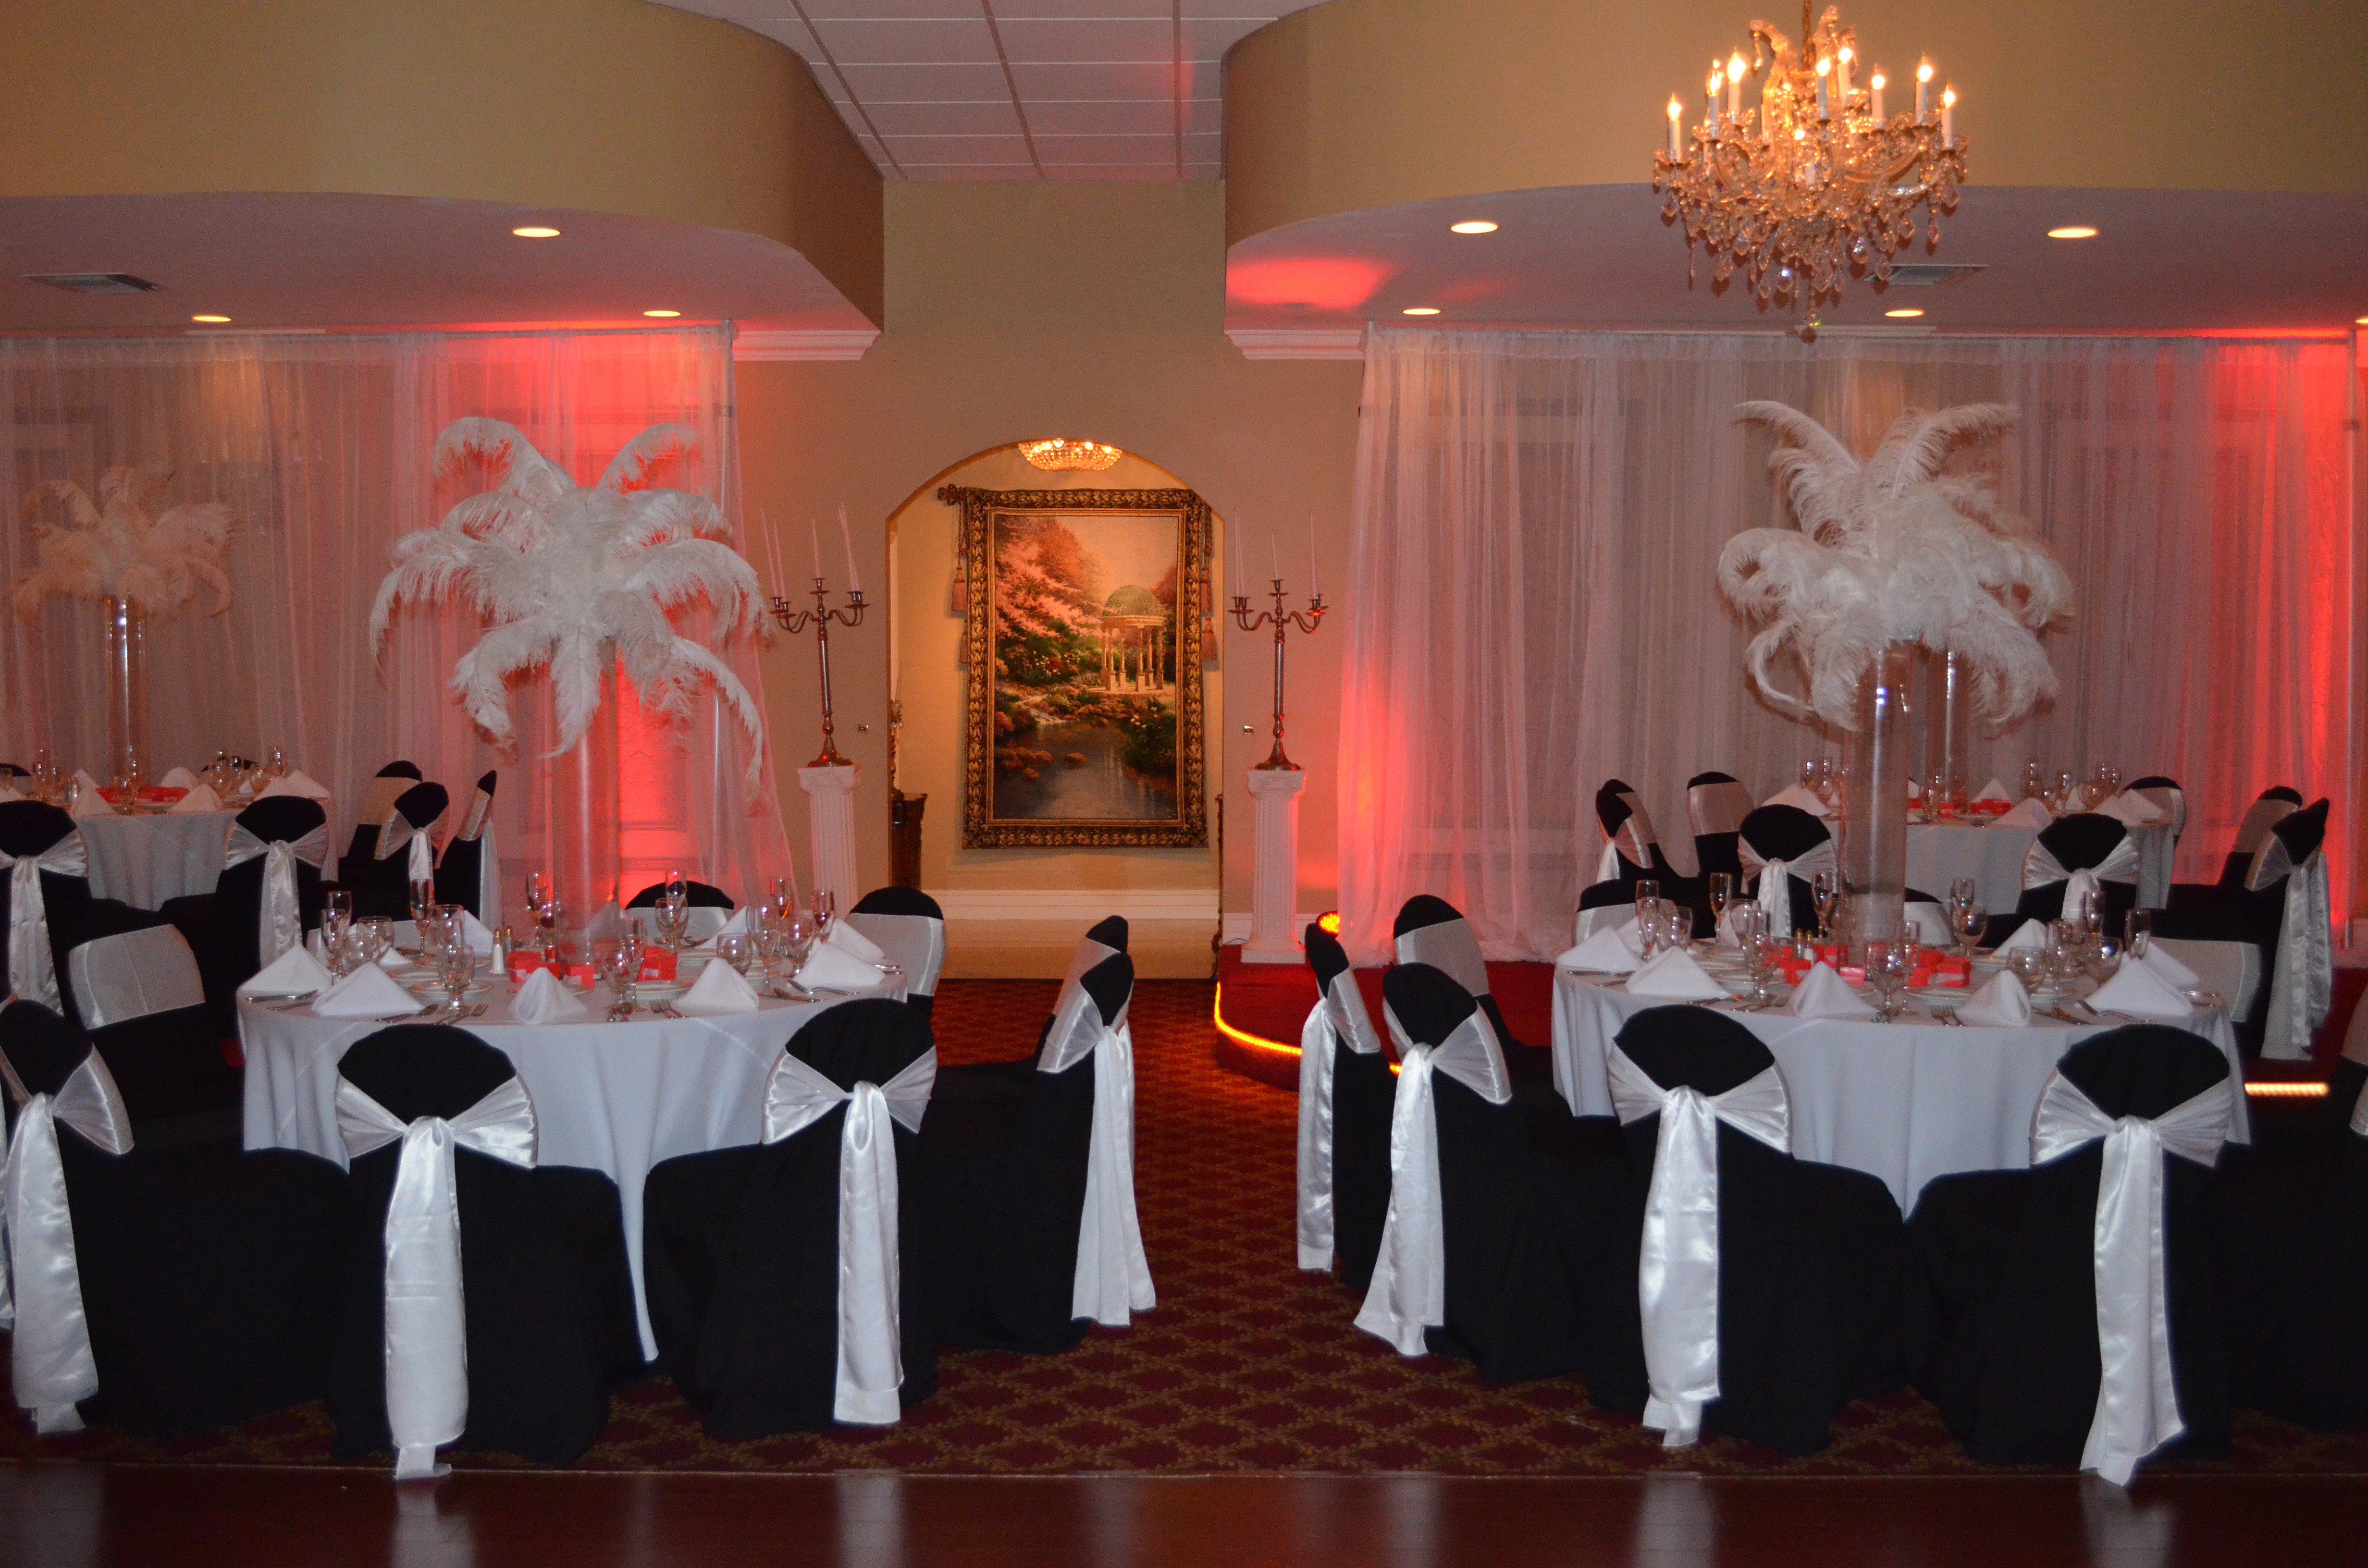 Best ideas about Decorations For 15 Birthday Party . Save or Pin Wedding Venues Miami Now.